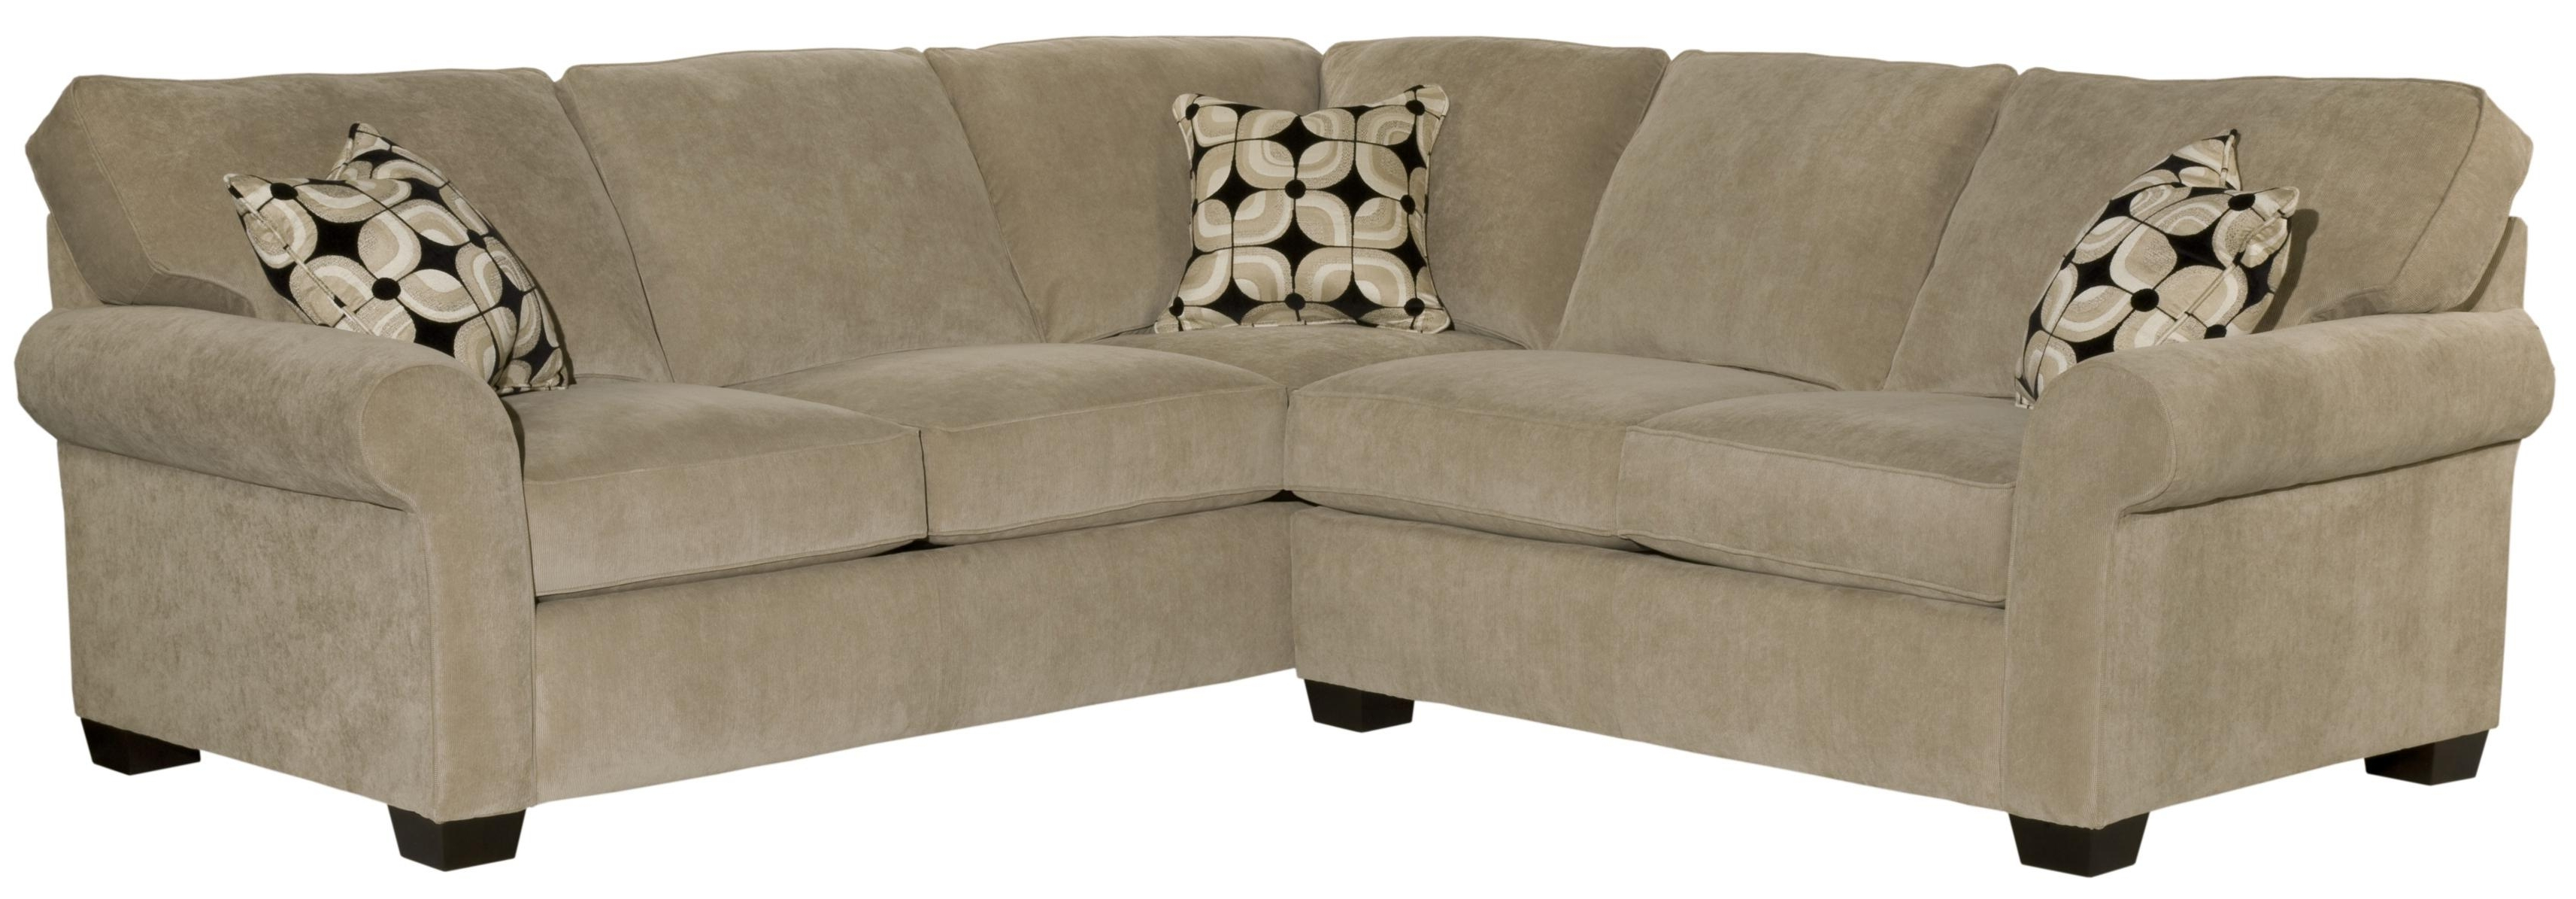 Broyhill Sectional Sofas For Most Recently Released Broyhill Furniture Ethan Two Piece Sectional With Corner Sofa (View 4 of 15)